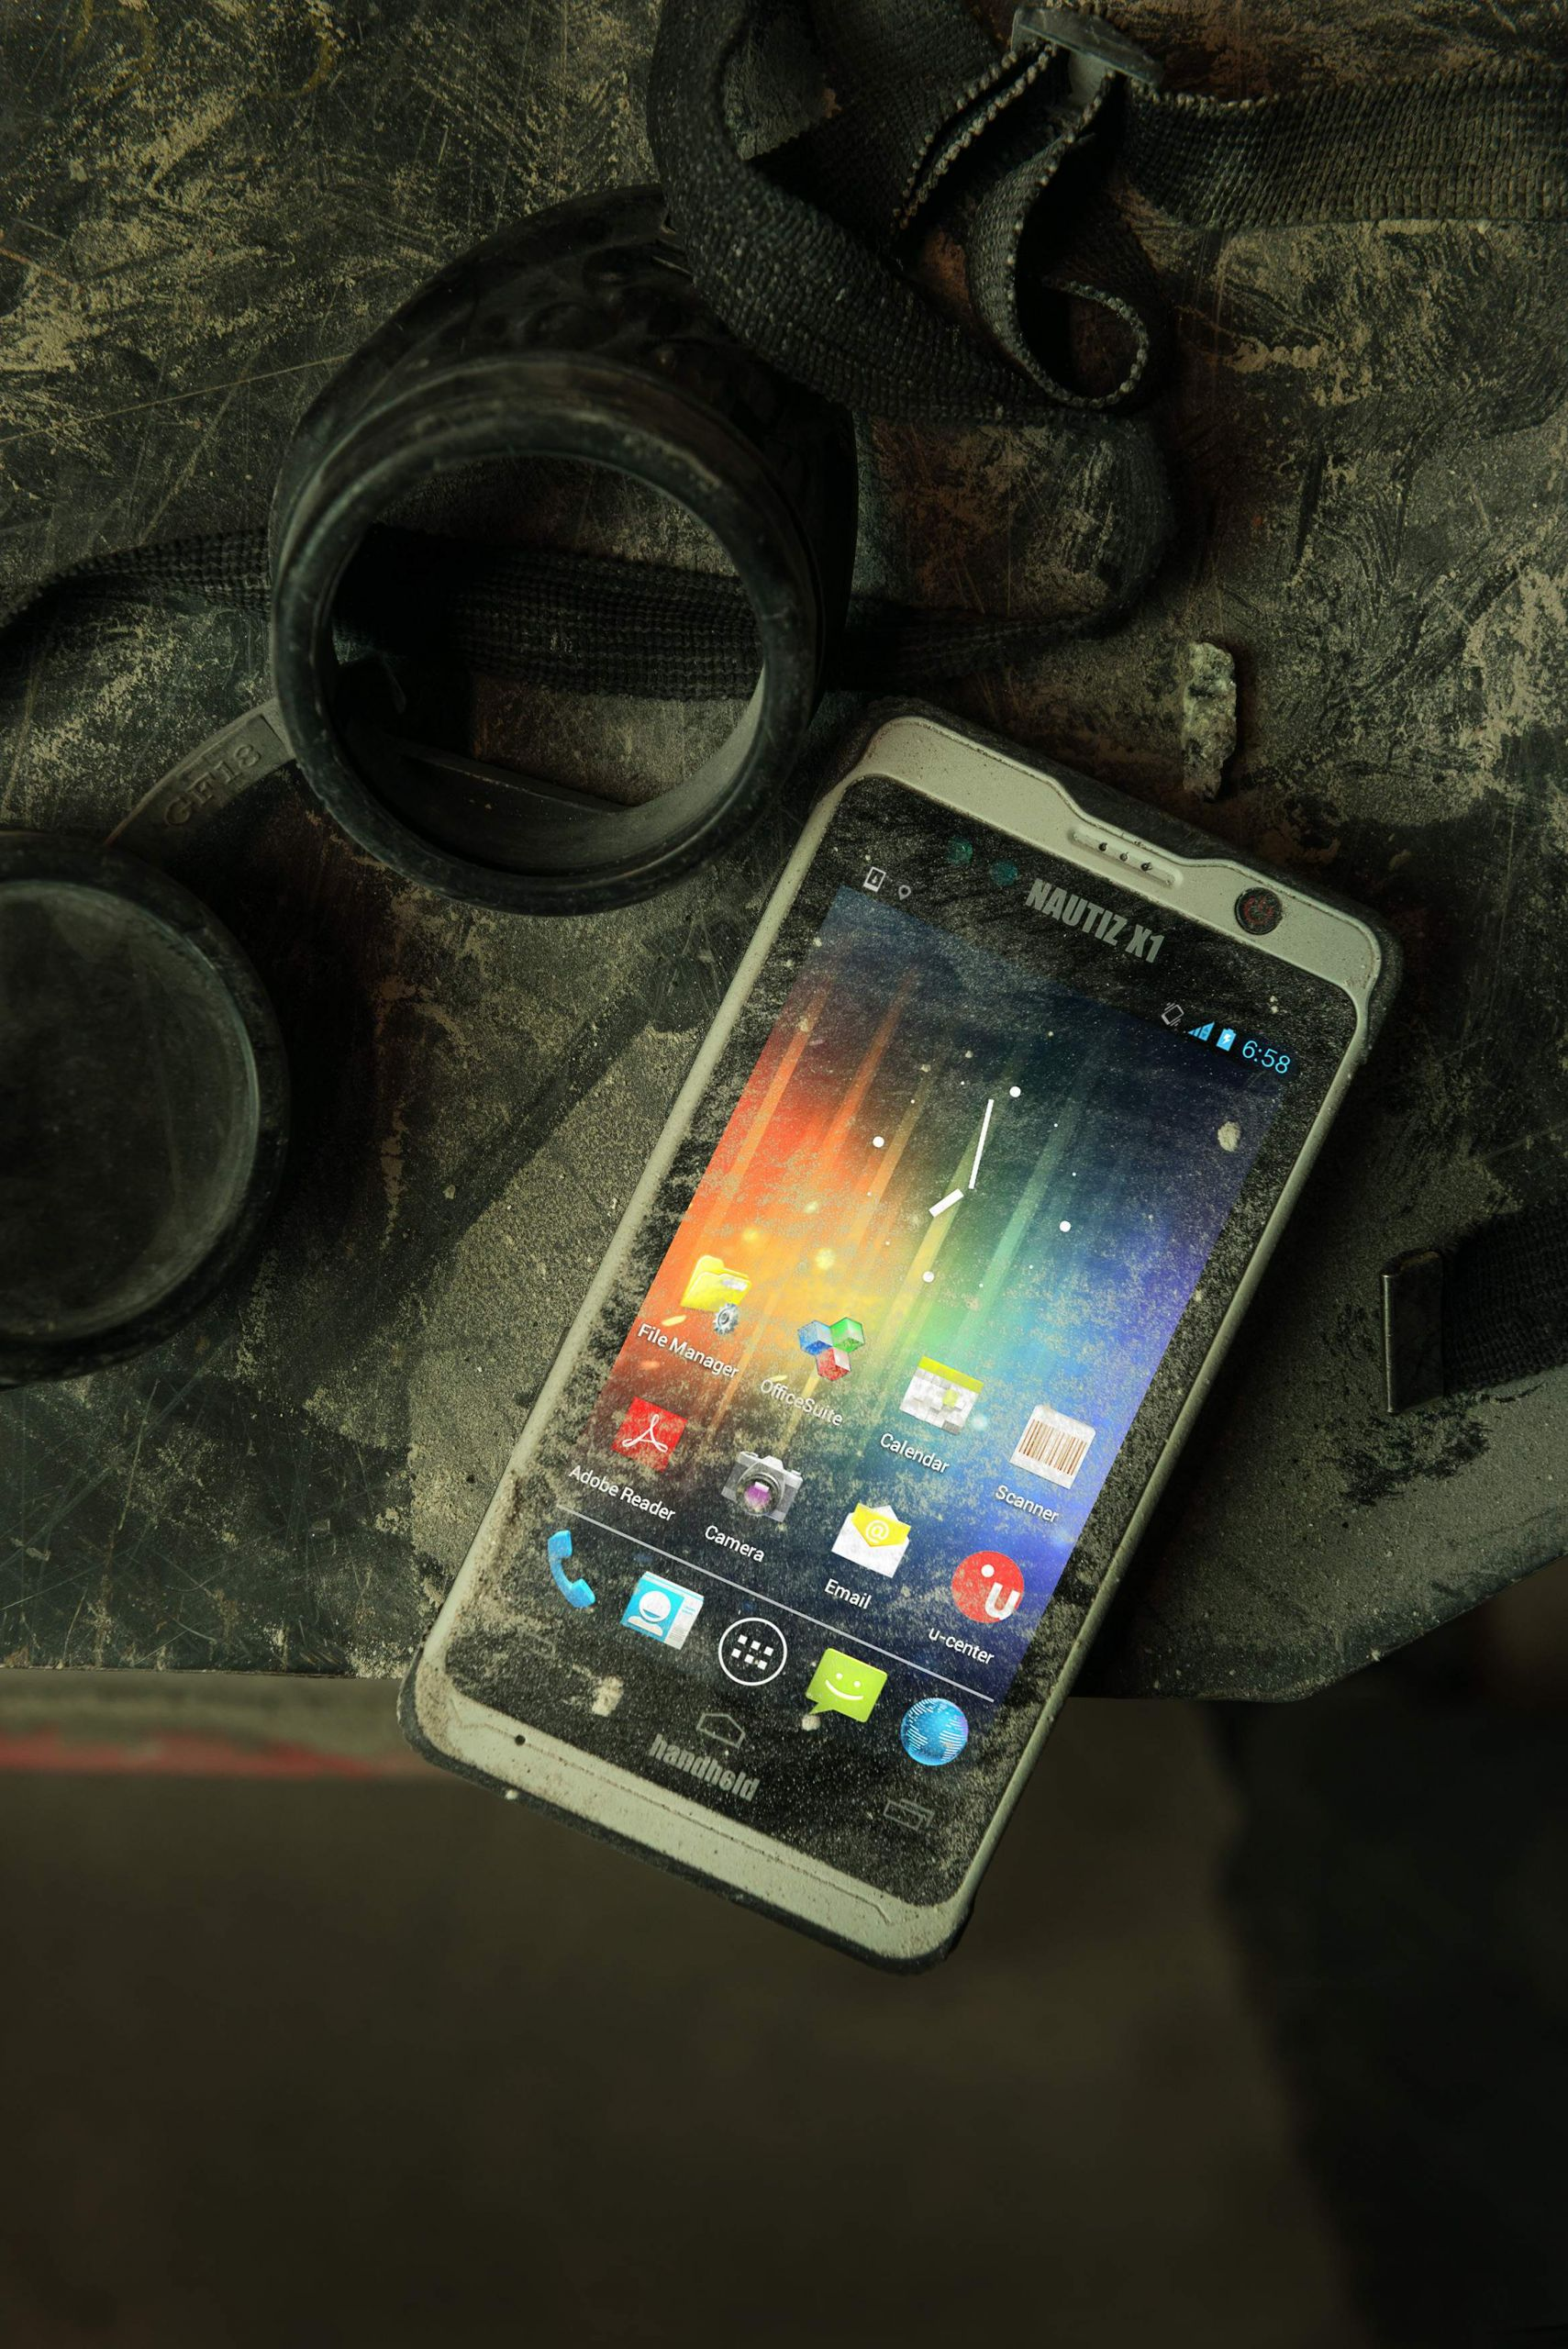 Nautiz X1 IP67 rugged enterprise smartphone gorilla glass